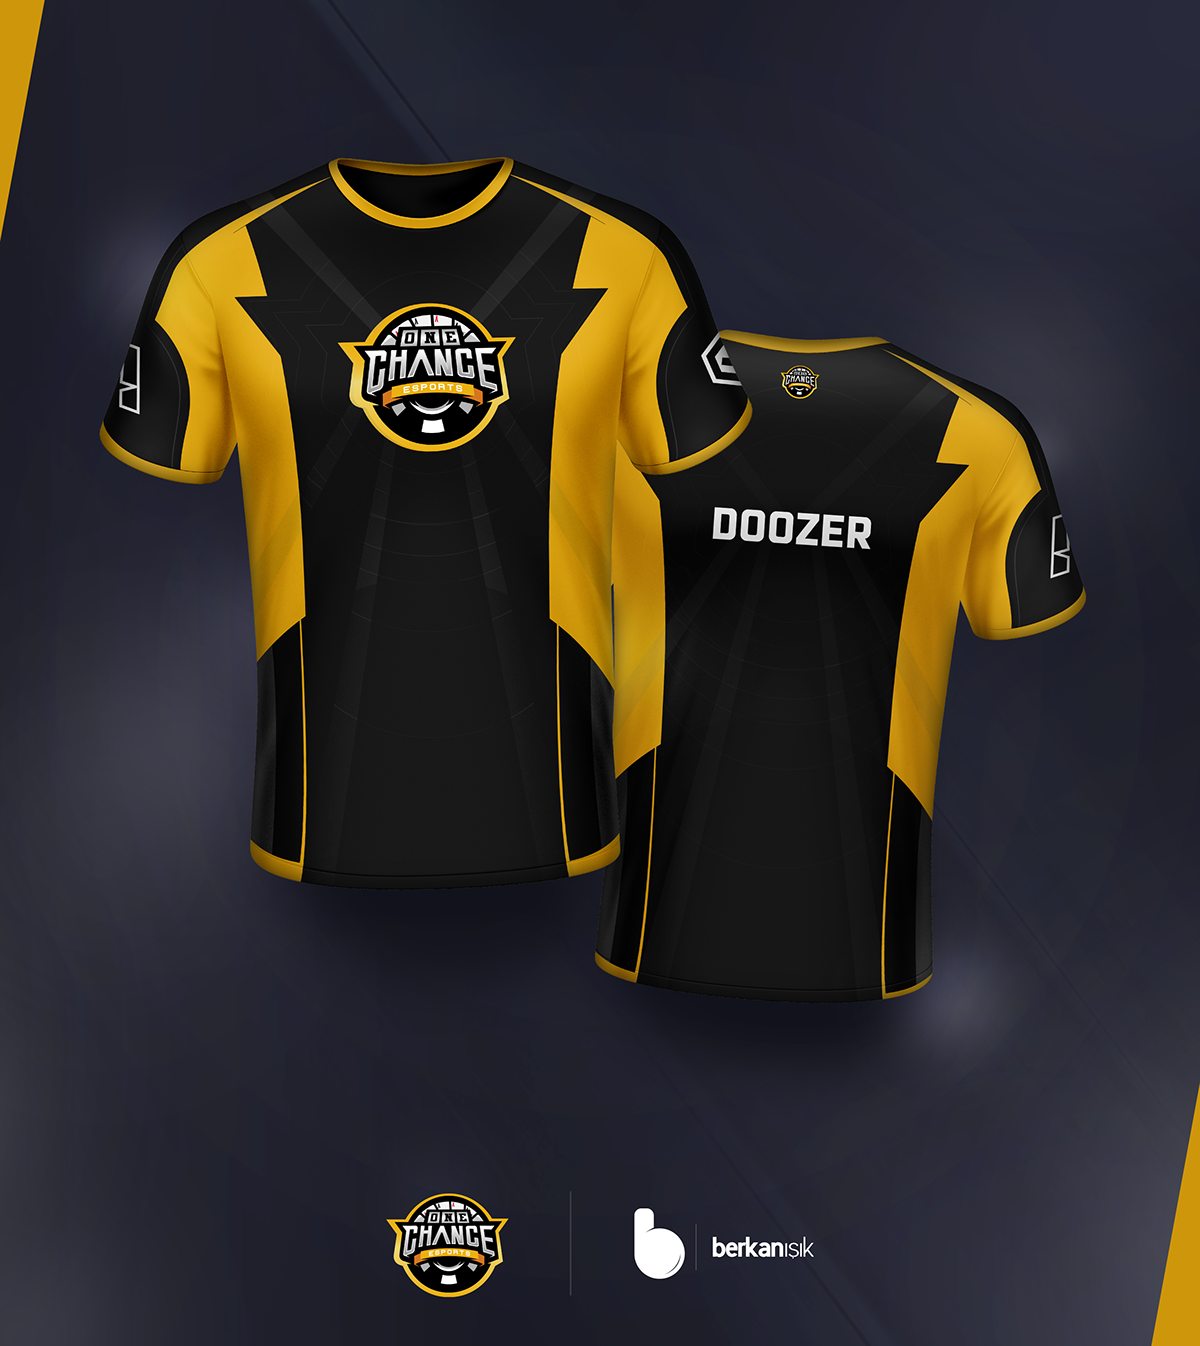 Onechance Esports Jersey Design On Behance Sport Shirt Design Jersey Design Custom Polo Shirts